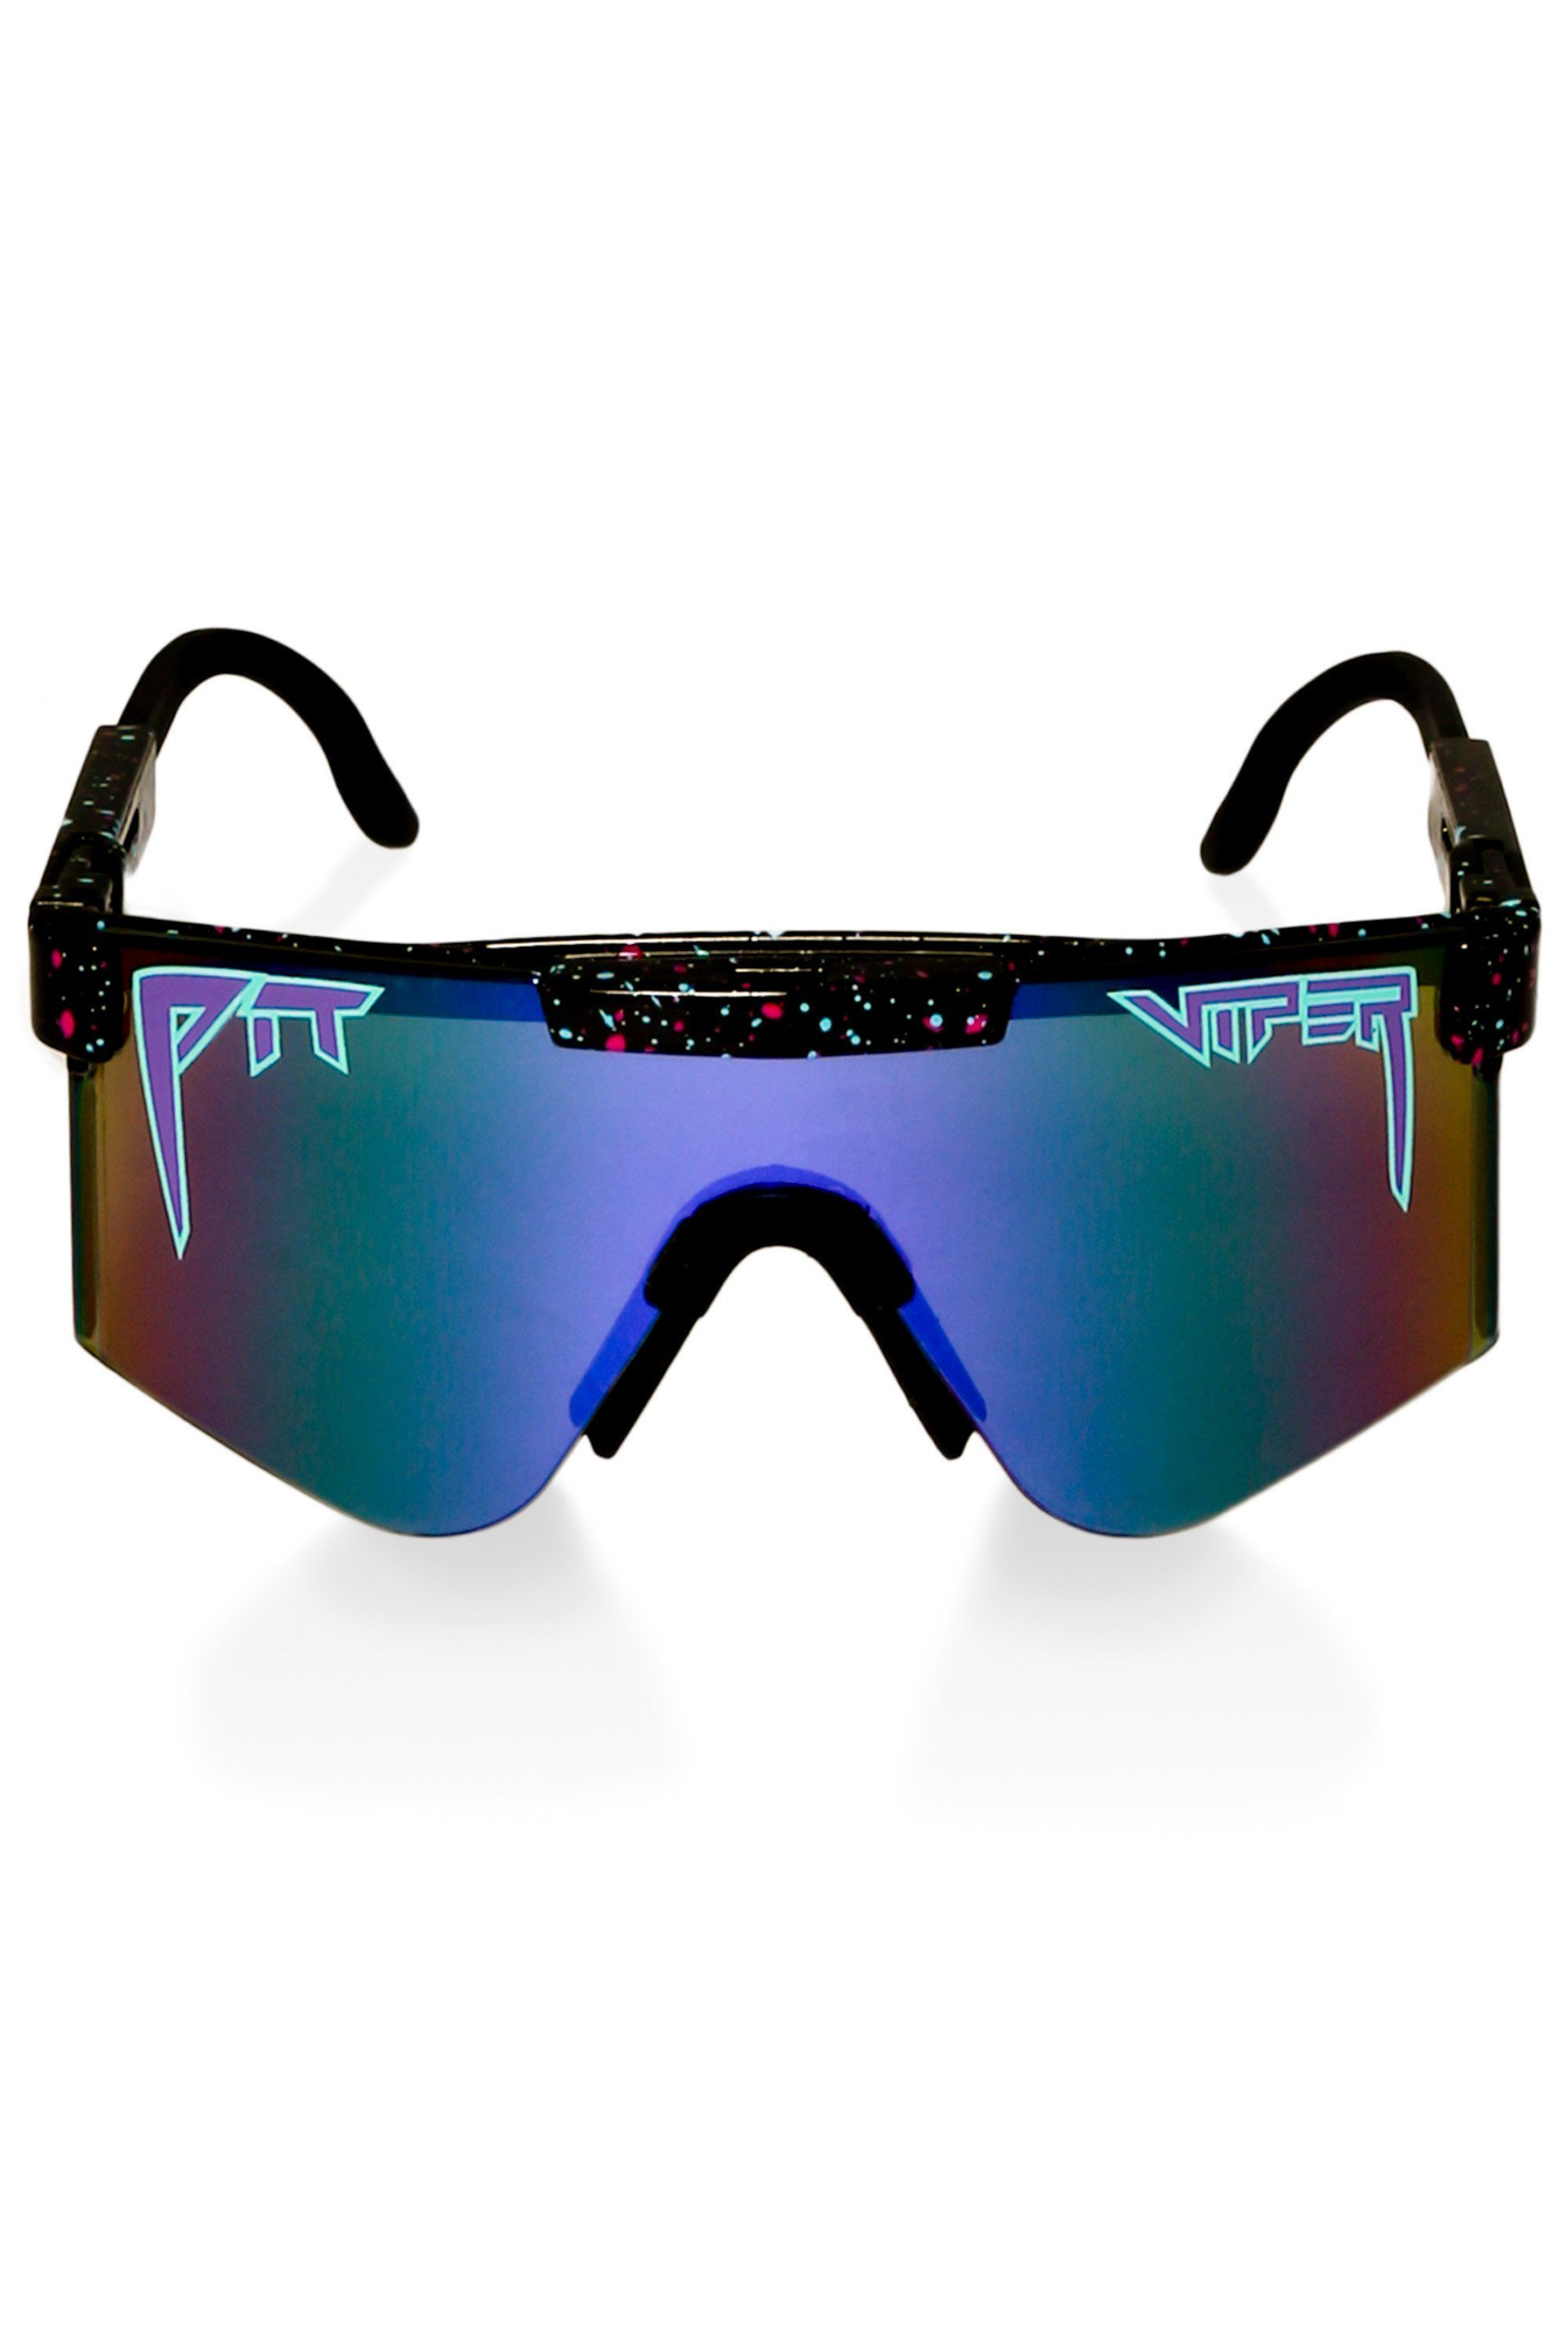 f86da68b15 Introducing the Night Falls Pit Viper sunglasses. With 3 adjustment points  for a perfect fit